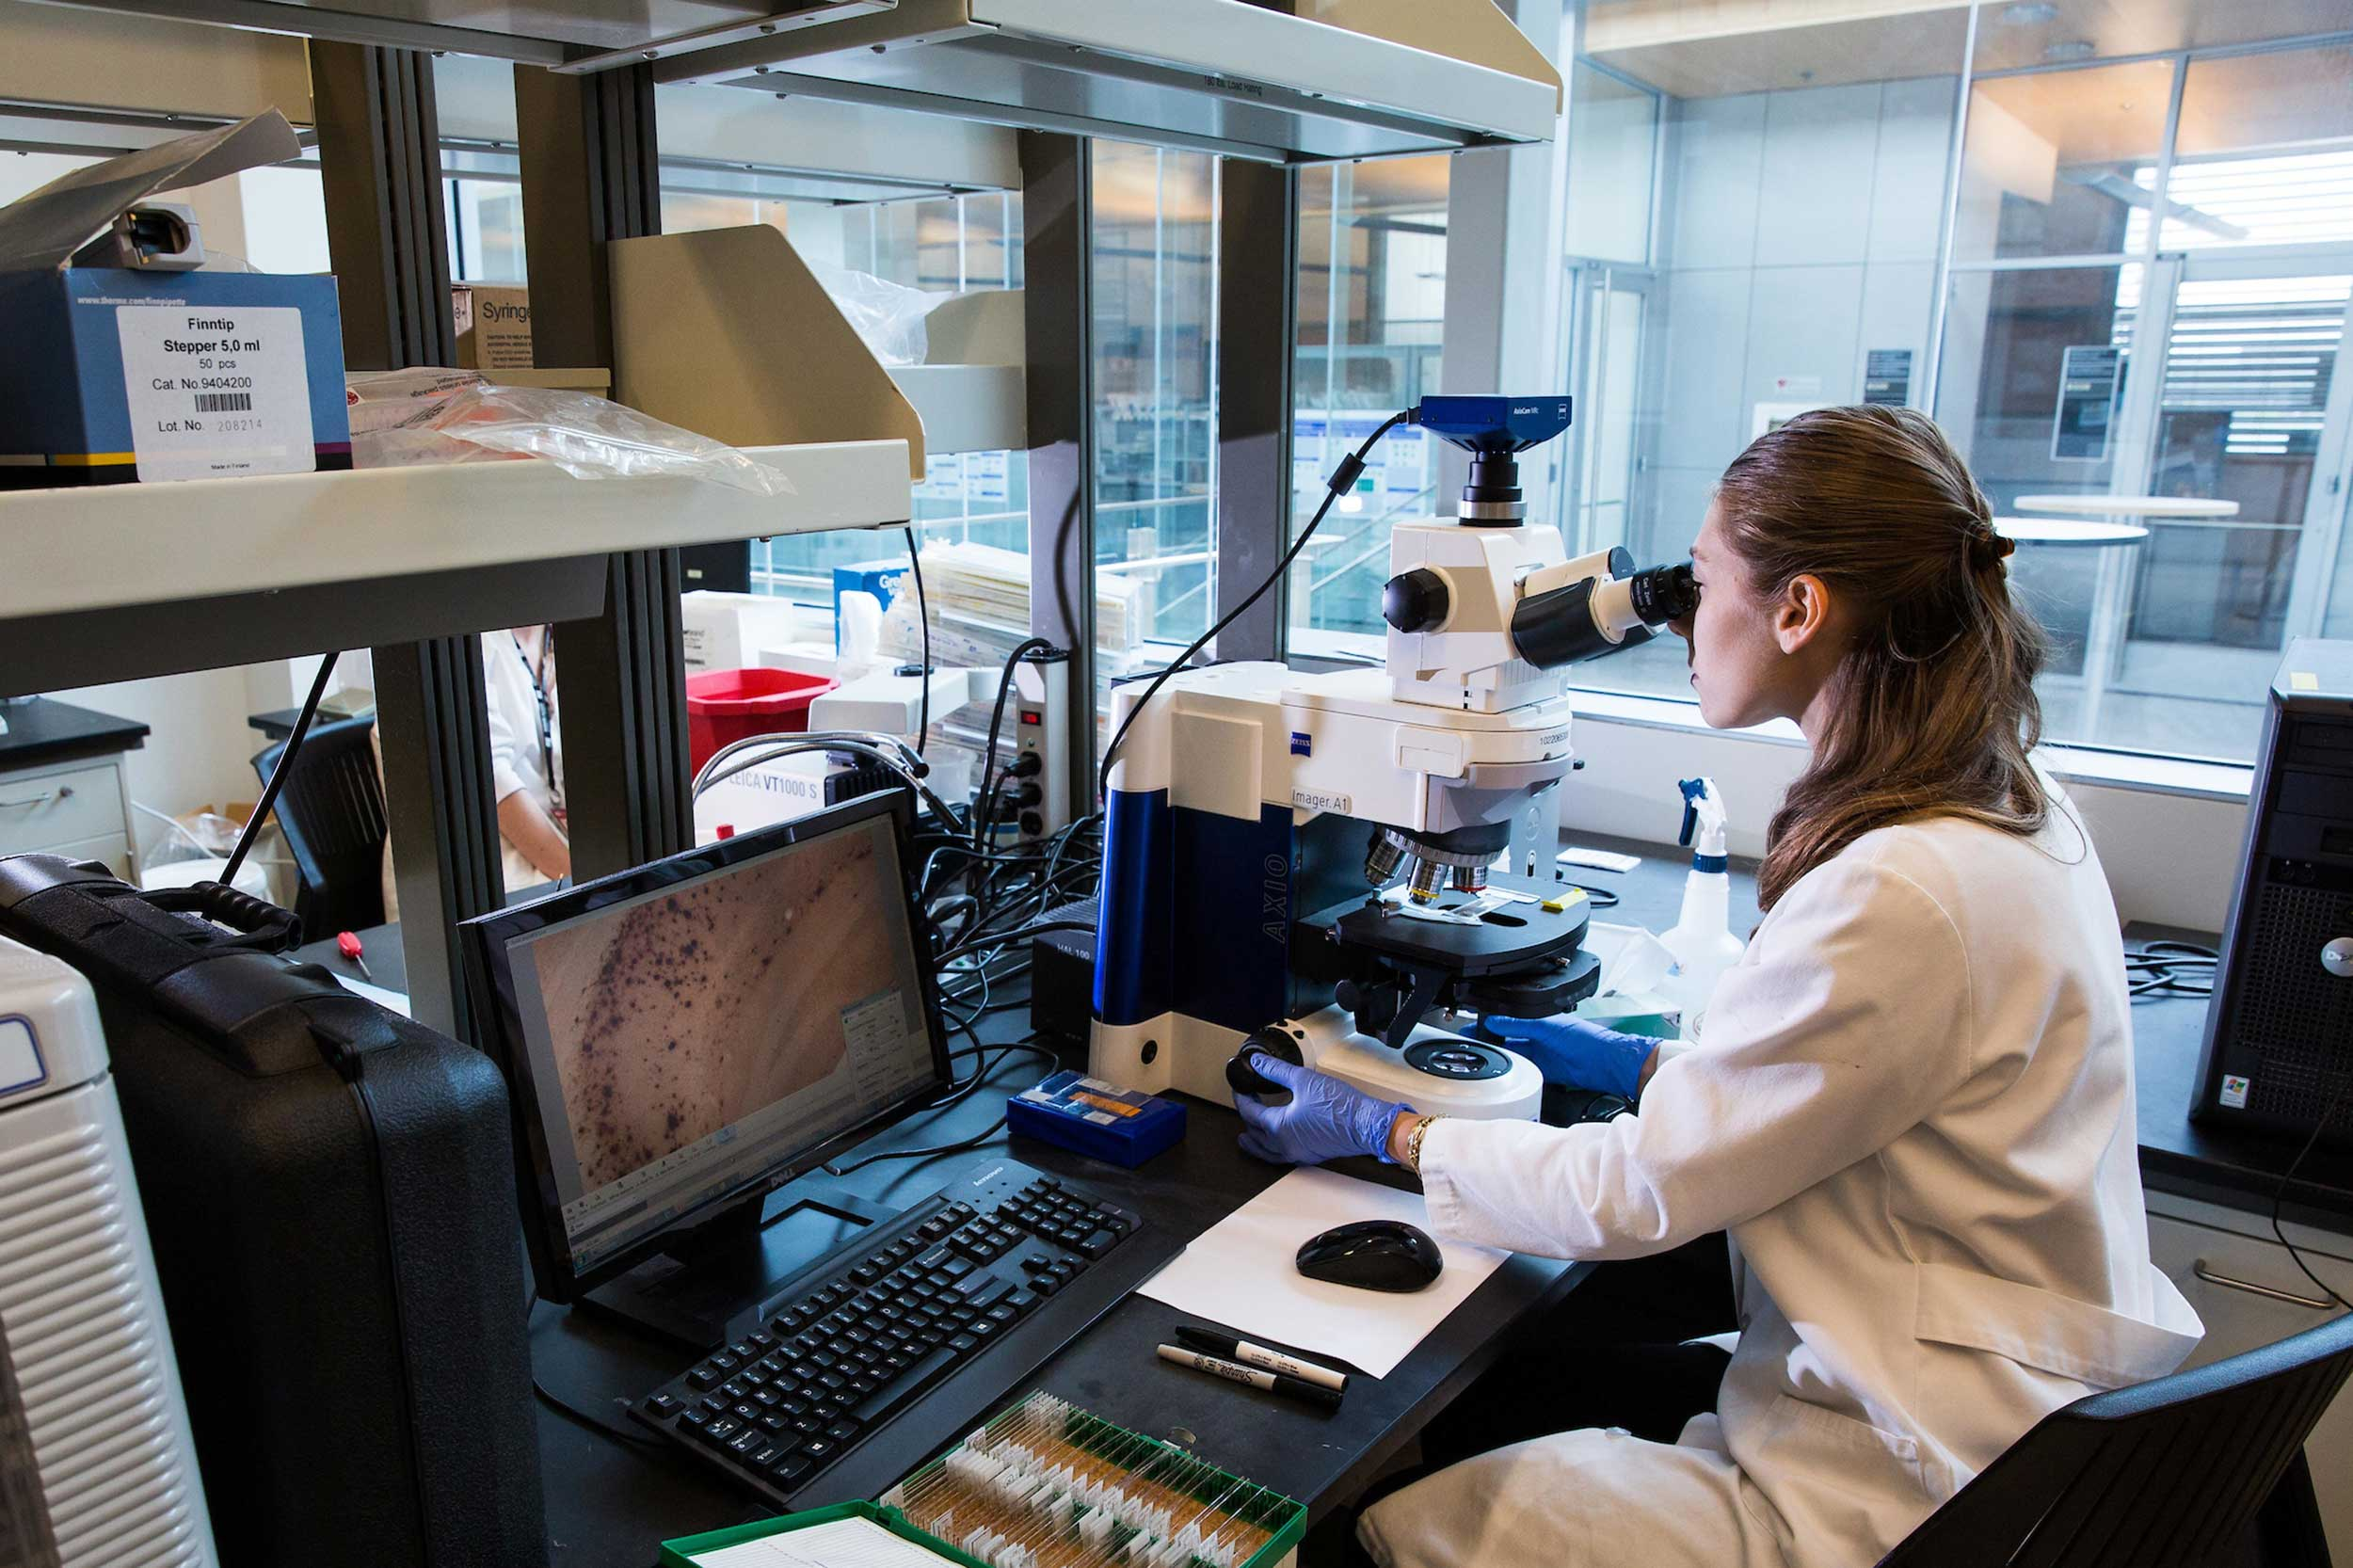 A woman sits at a microscope in a university lab